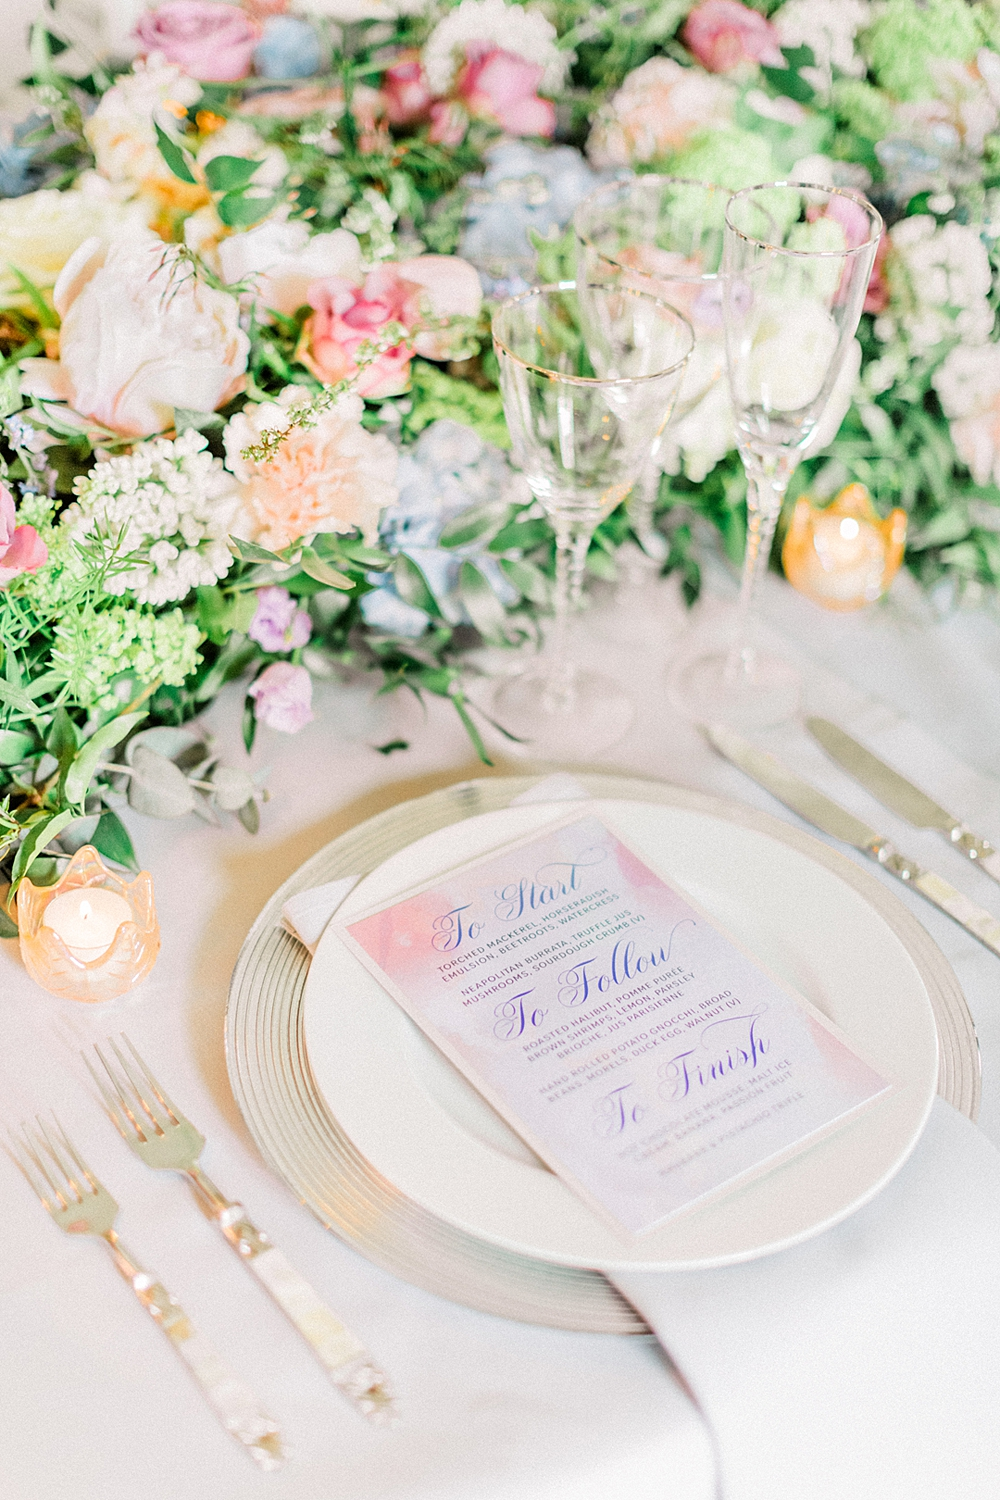 Charlotte-Munro-luxury-weddings-planner-stylist_0113.jpg